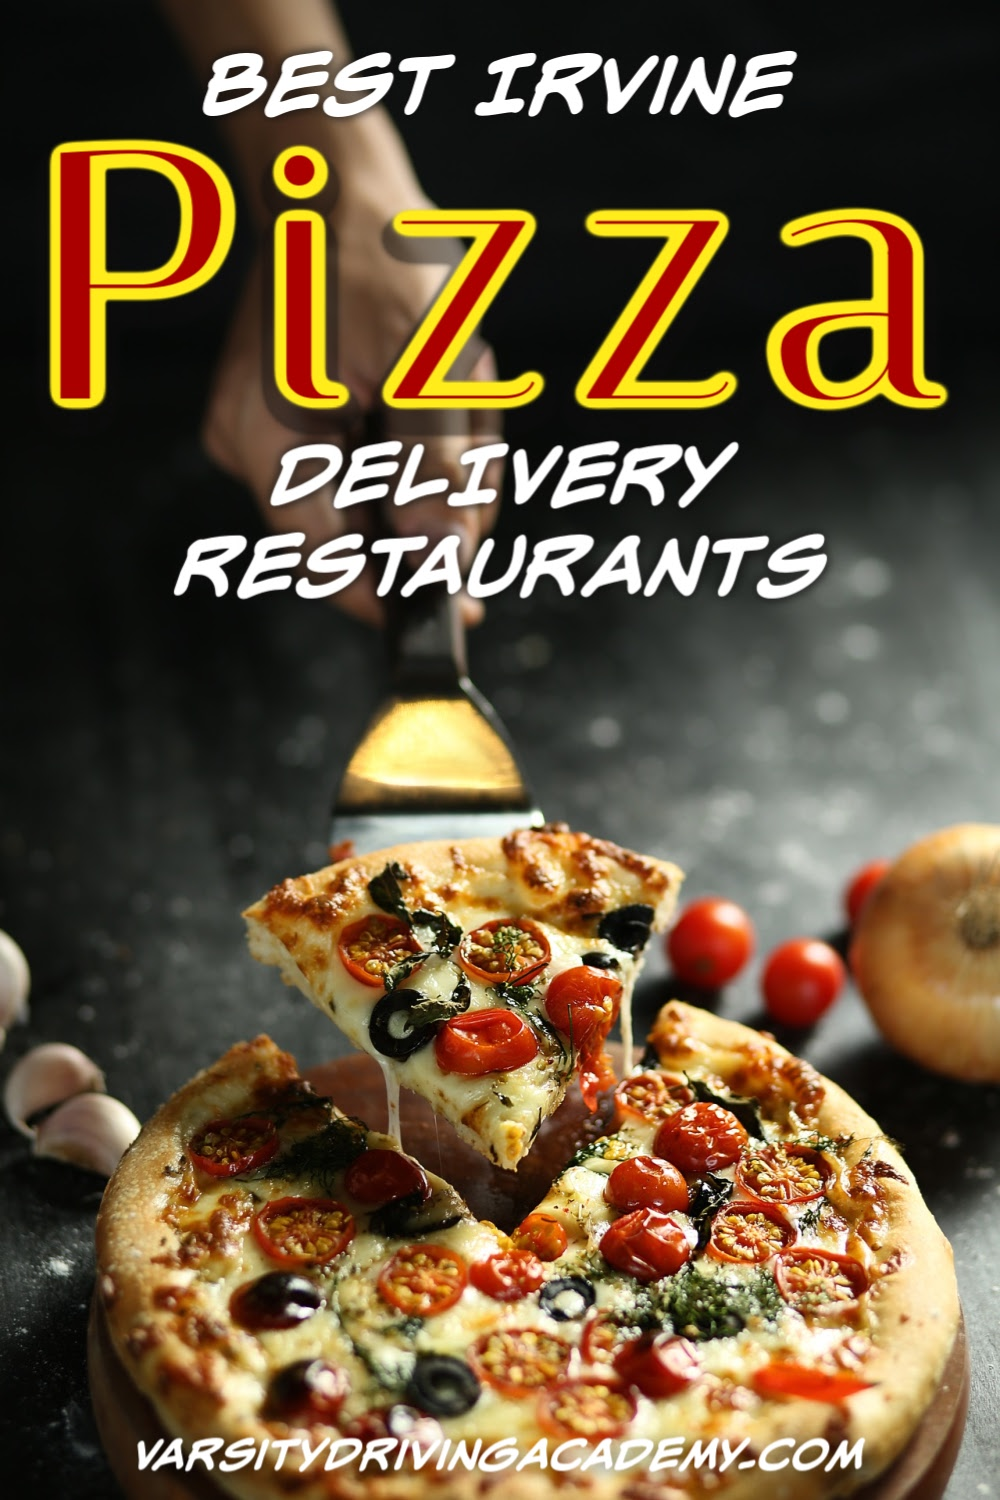 Stay in, stay safe, and order some of the best Irvine pizza restaurants with delivery, amazing pizzas, and amazing service.